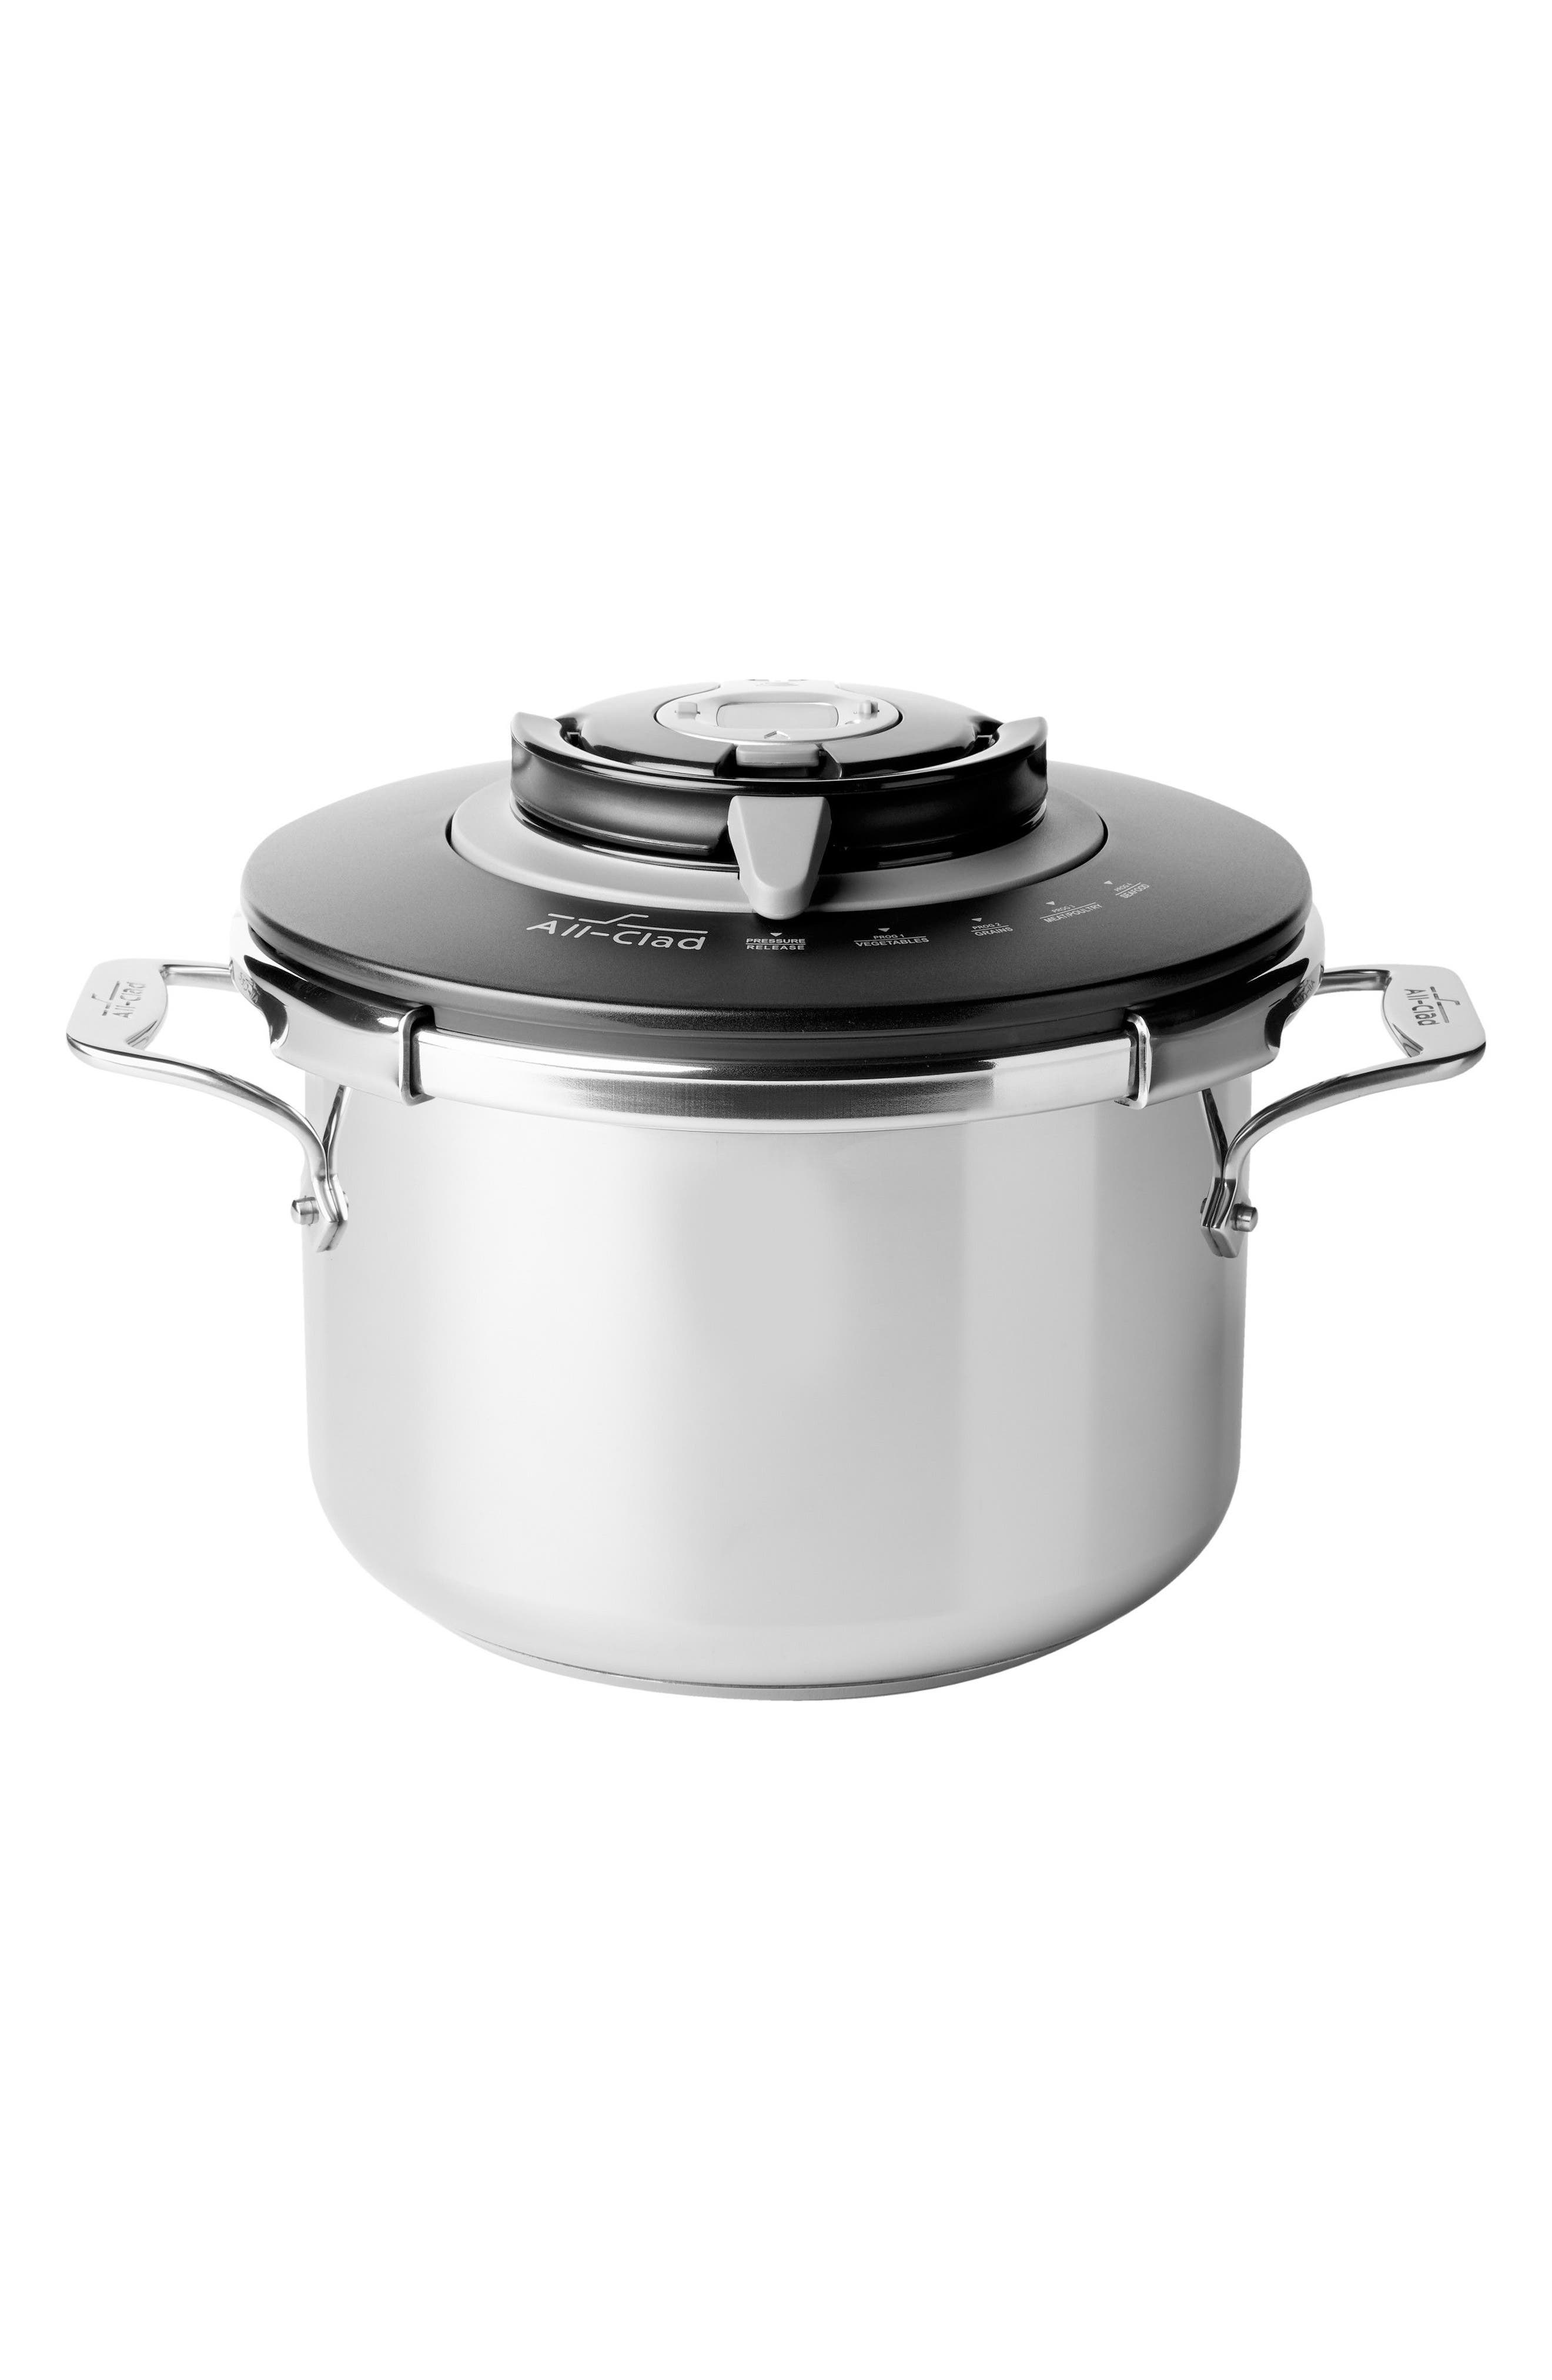 8.4-Quart Stovetop Pressure Cooker,                         Main,                         color, STAINLESS